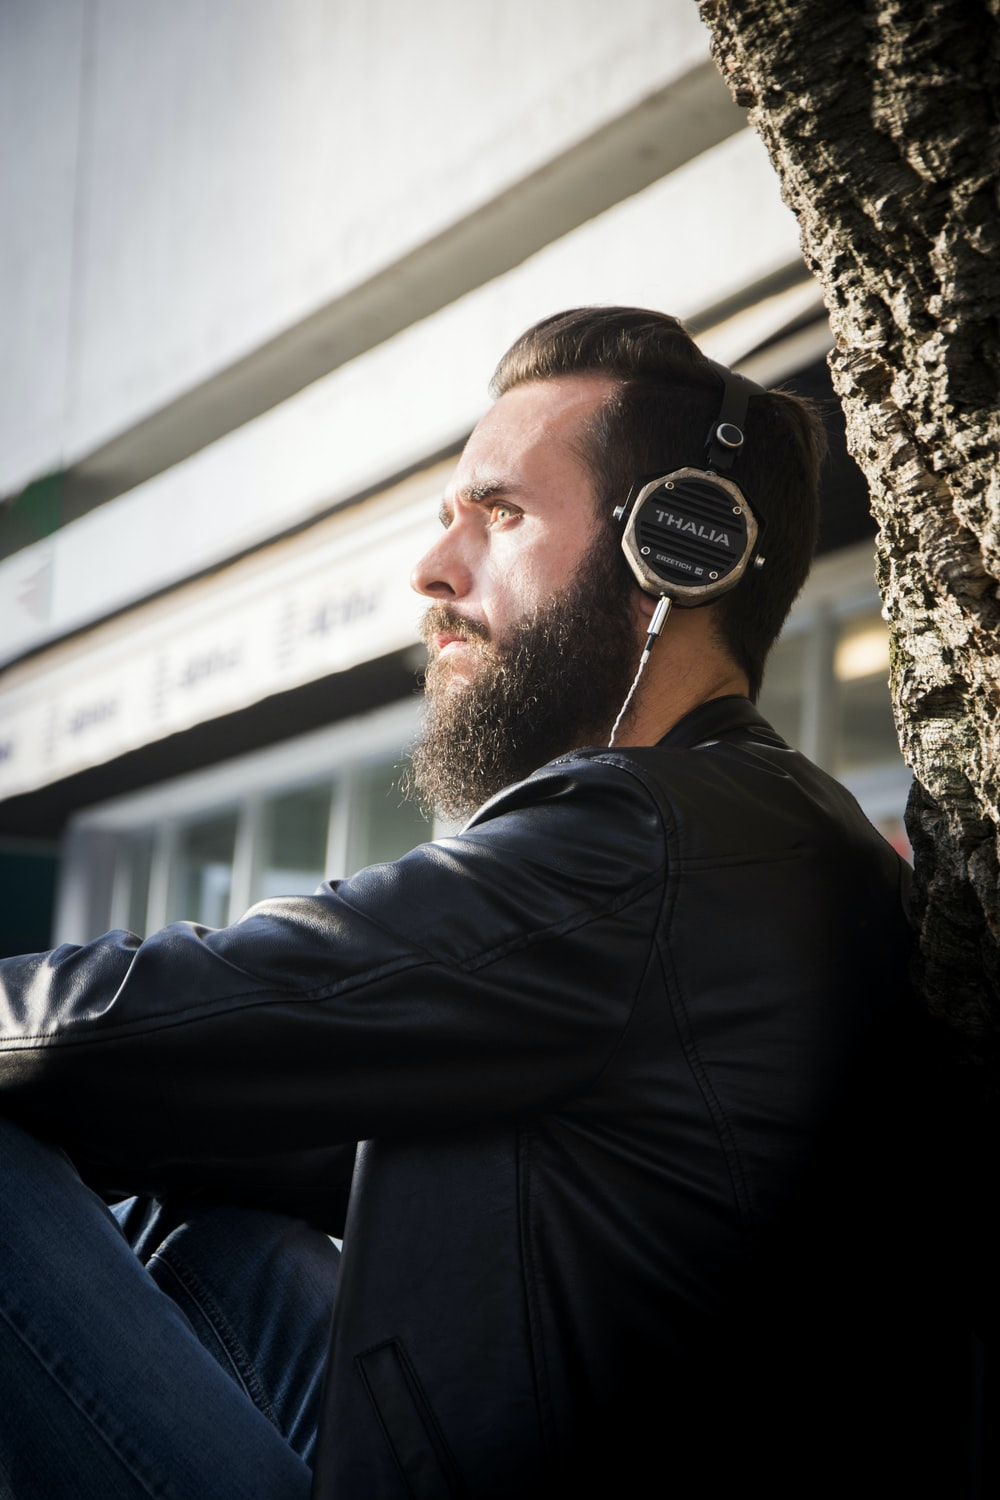 man in black leather jacket using headphones while sitting near building